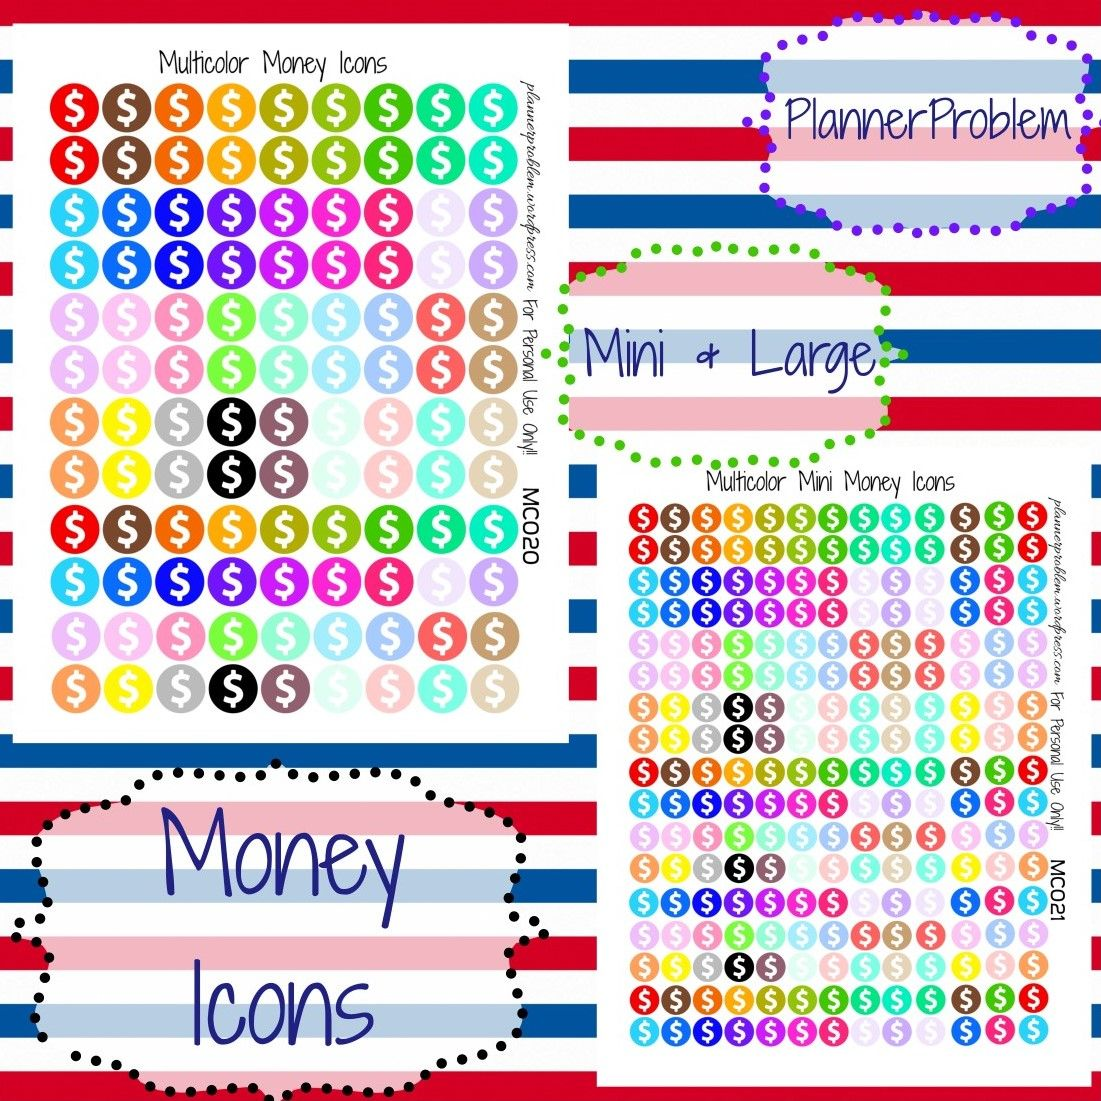 Multicolor Money Icons! | Free Printable Planner stickers from plannerproblem.wordpress.com! Available in mini and large sizes! Download for free at the link below! https://plannerproblem.wordpress.co